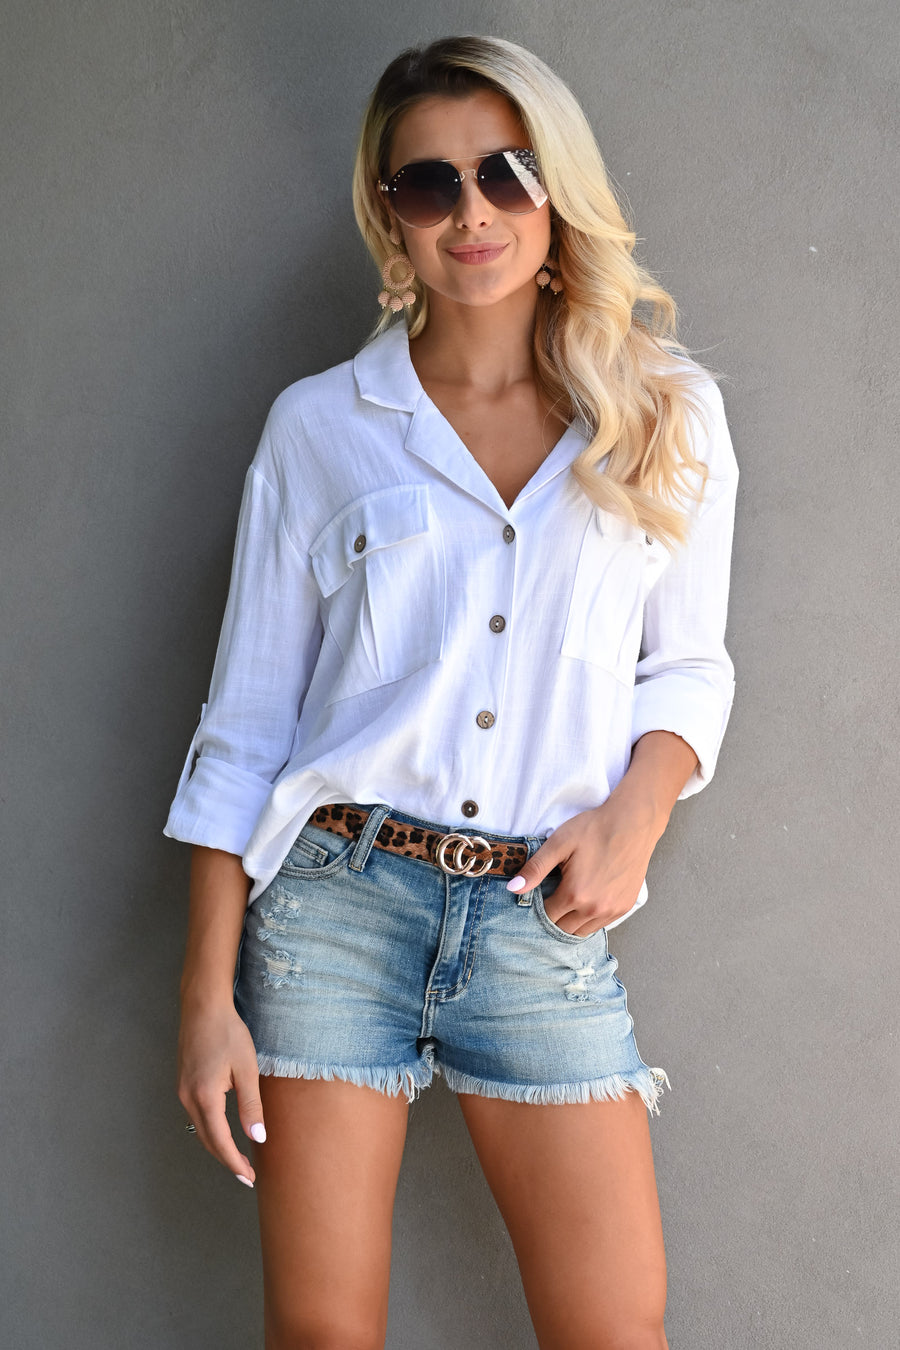 Welcome To The OC Top - Ivory womens trendy button up long sleeve collared top closet candy sitting